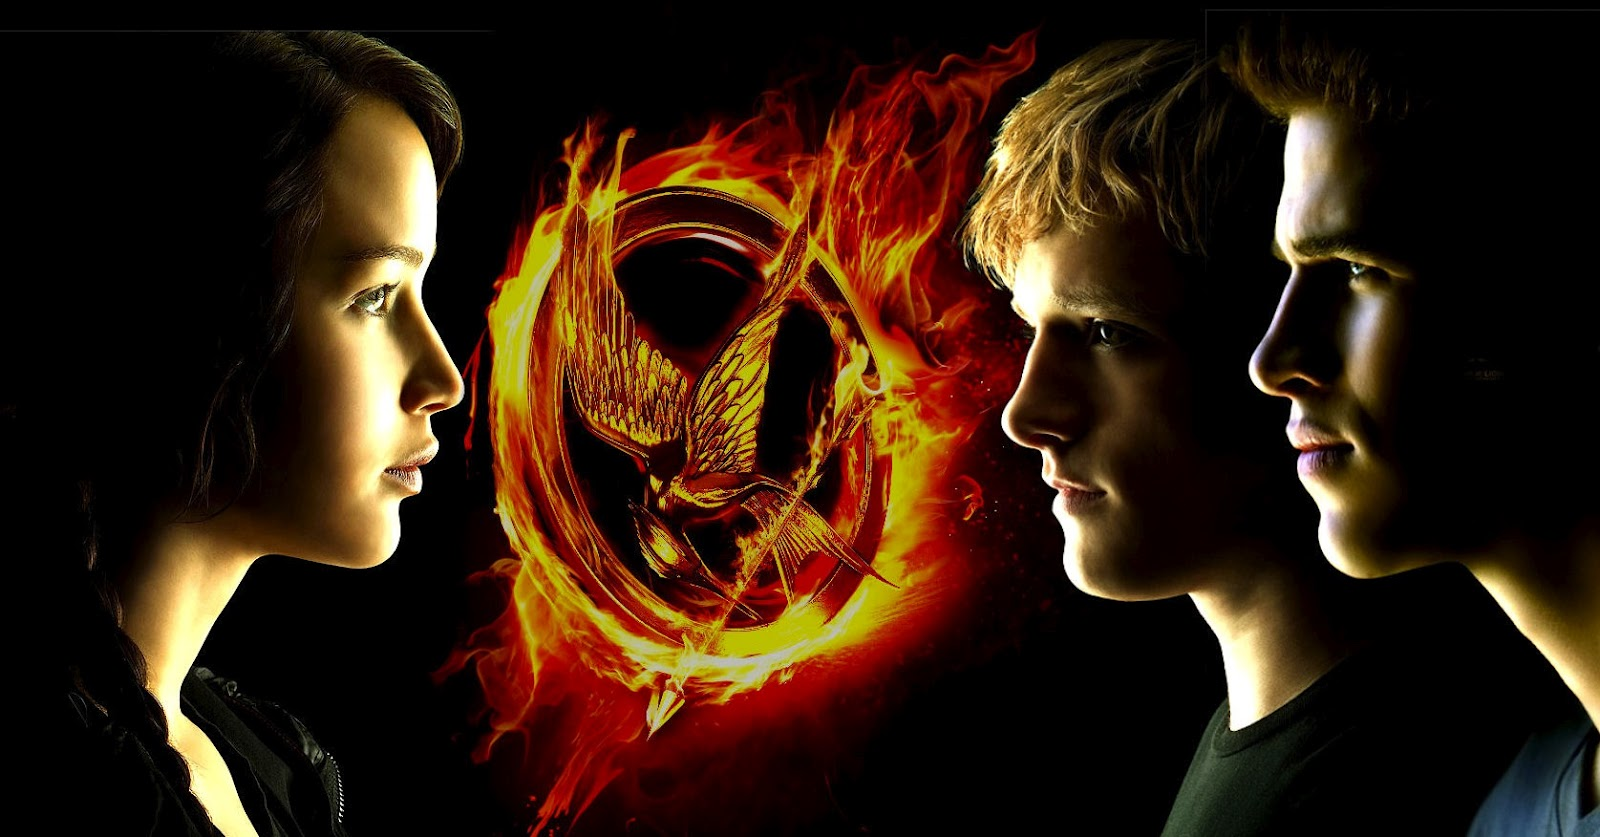 Film The Hunger Games Catching Fire The Verbal Spew